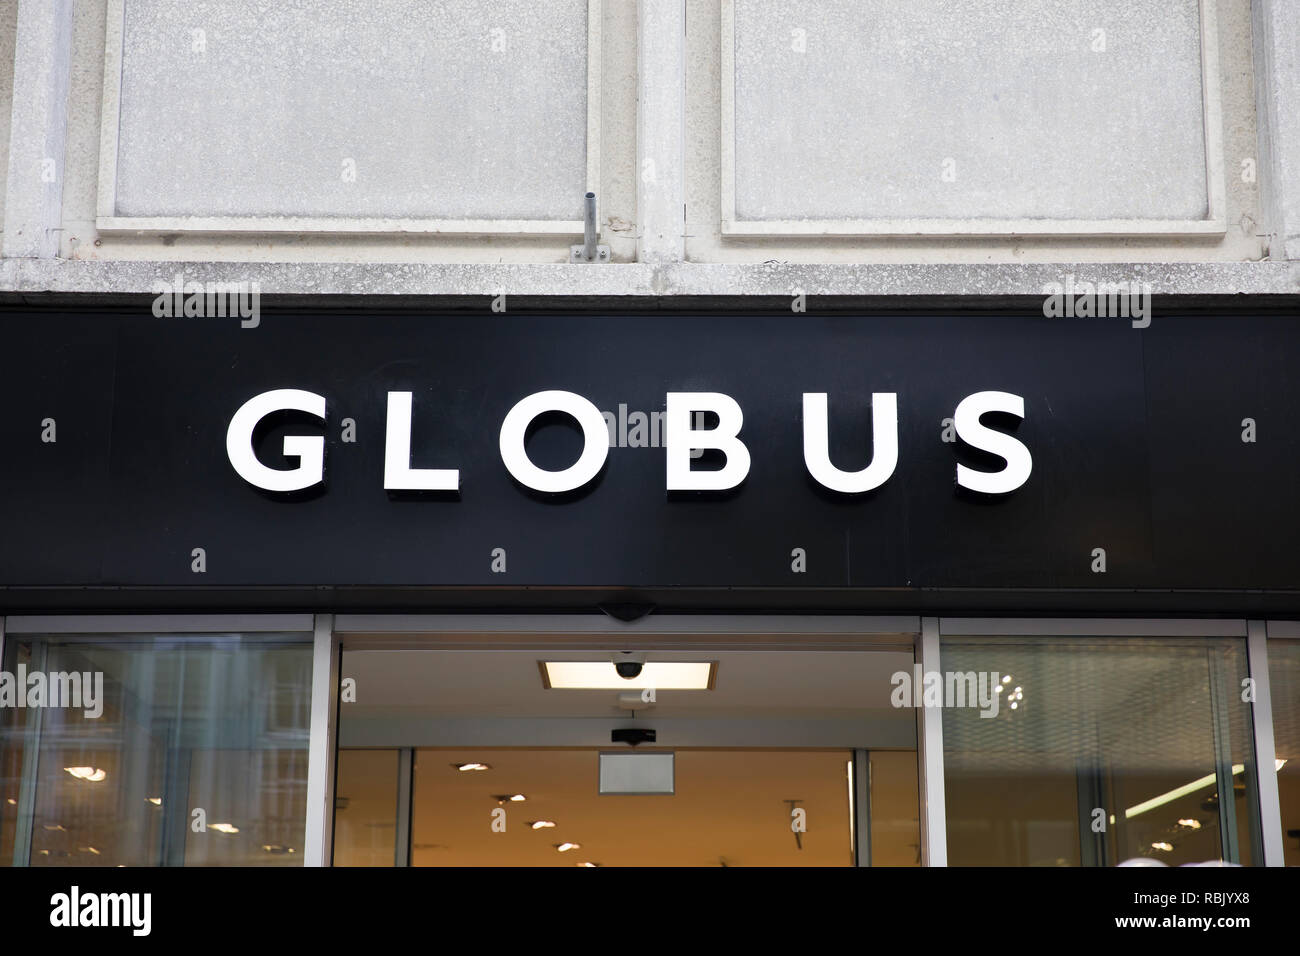 BASEL, SWITZERLAND - SEPTEMBER 24, 2018: Detail of Globus store in Basel, Switzerland. Globus is a Swiss department store company founded at 1907. - Stock Image